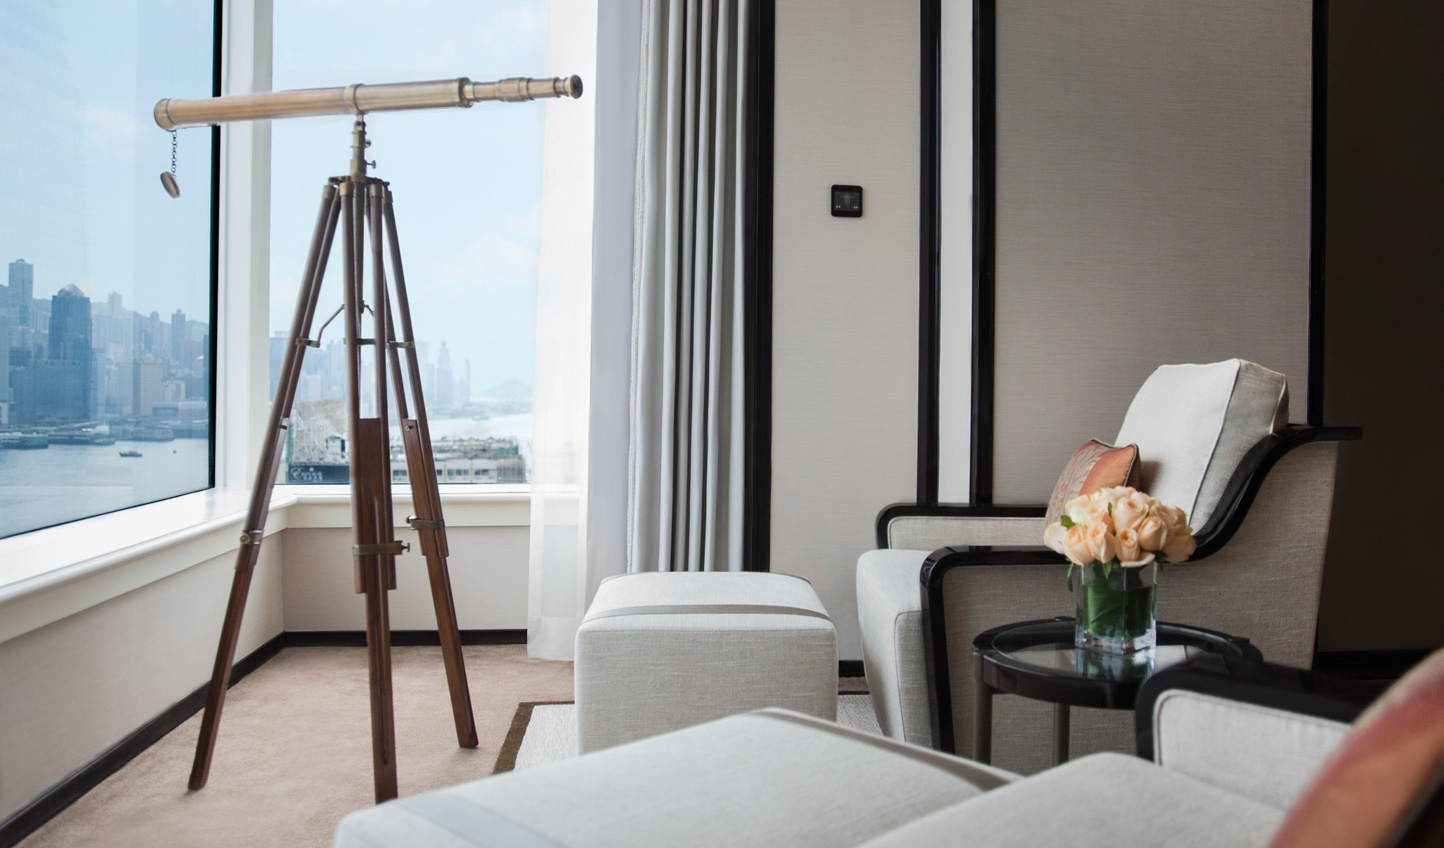 Check in at The Peninsula and admire sweeping views across Hong Kong's Victoria Harbour